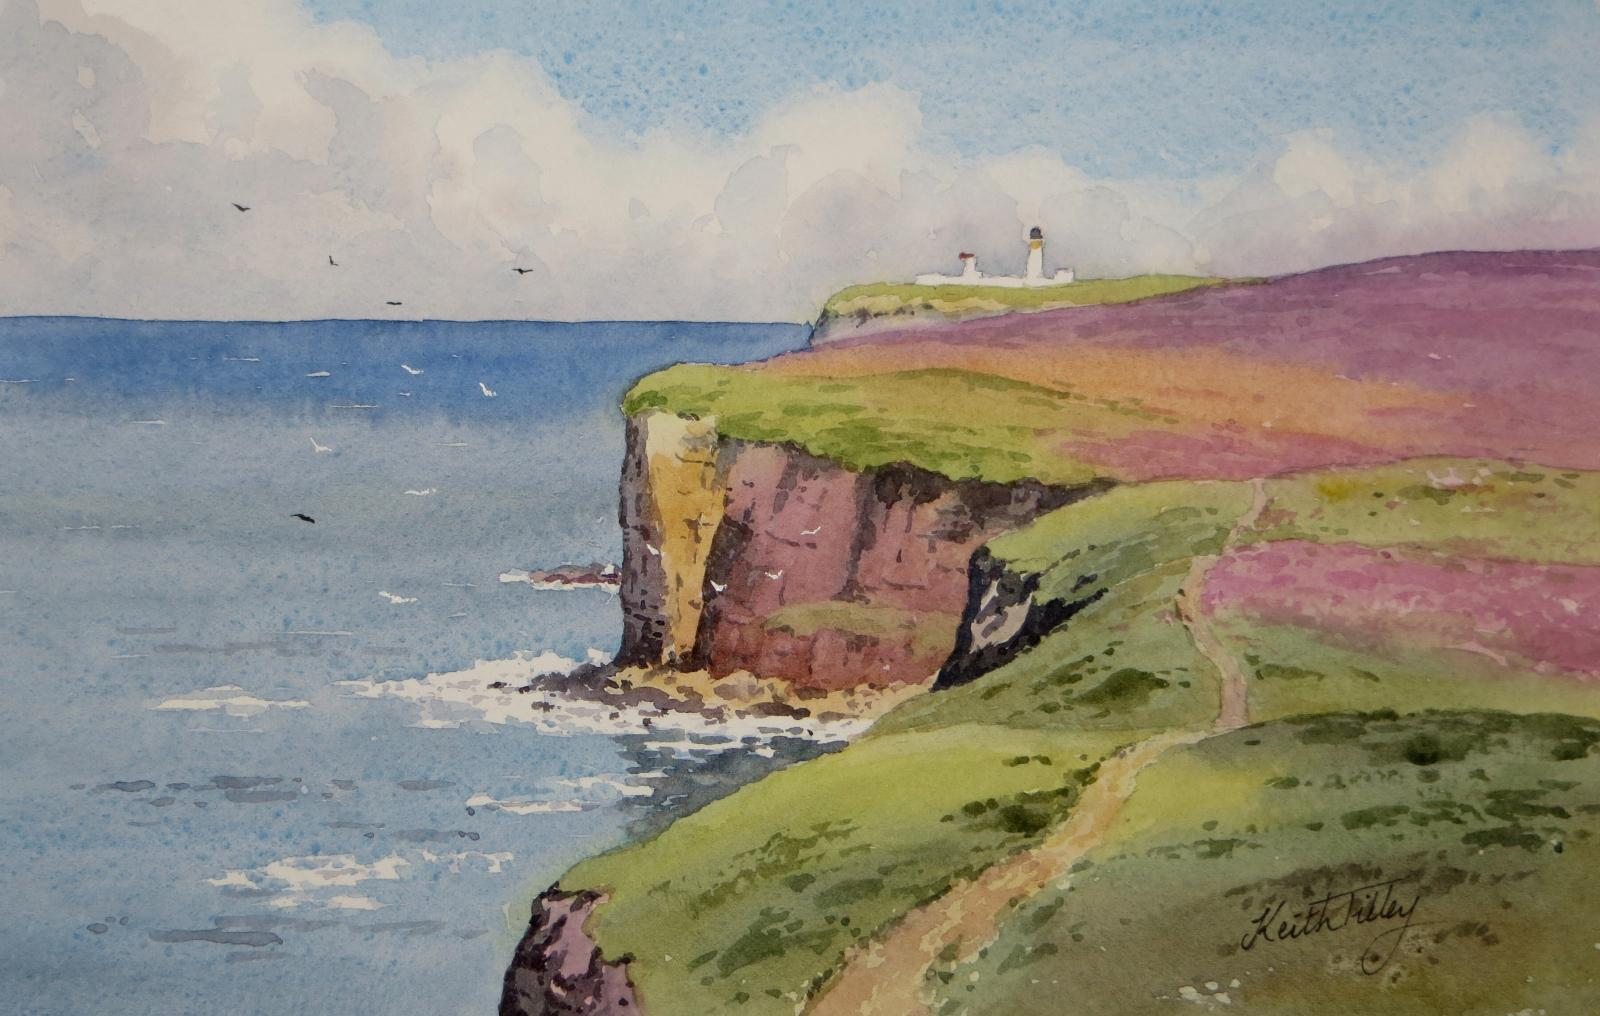 Dunnet Head, the most northerly point in Scotland. A landmark on the North Coast 500 route. Original watercolour.